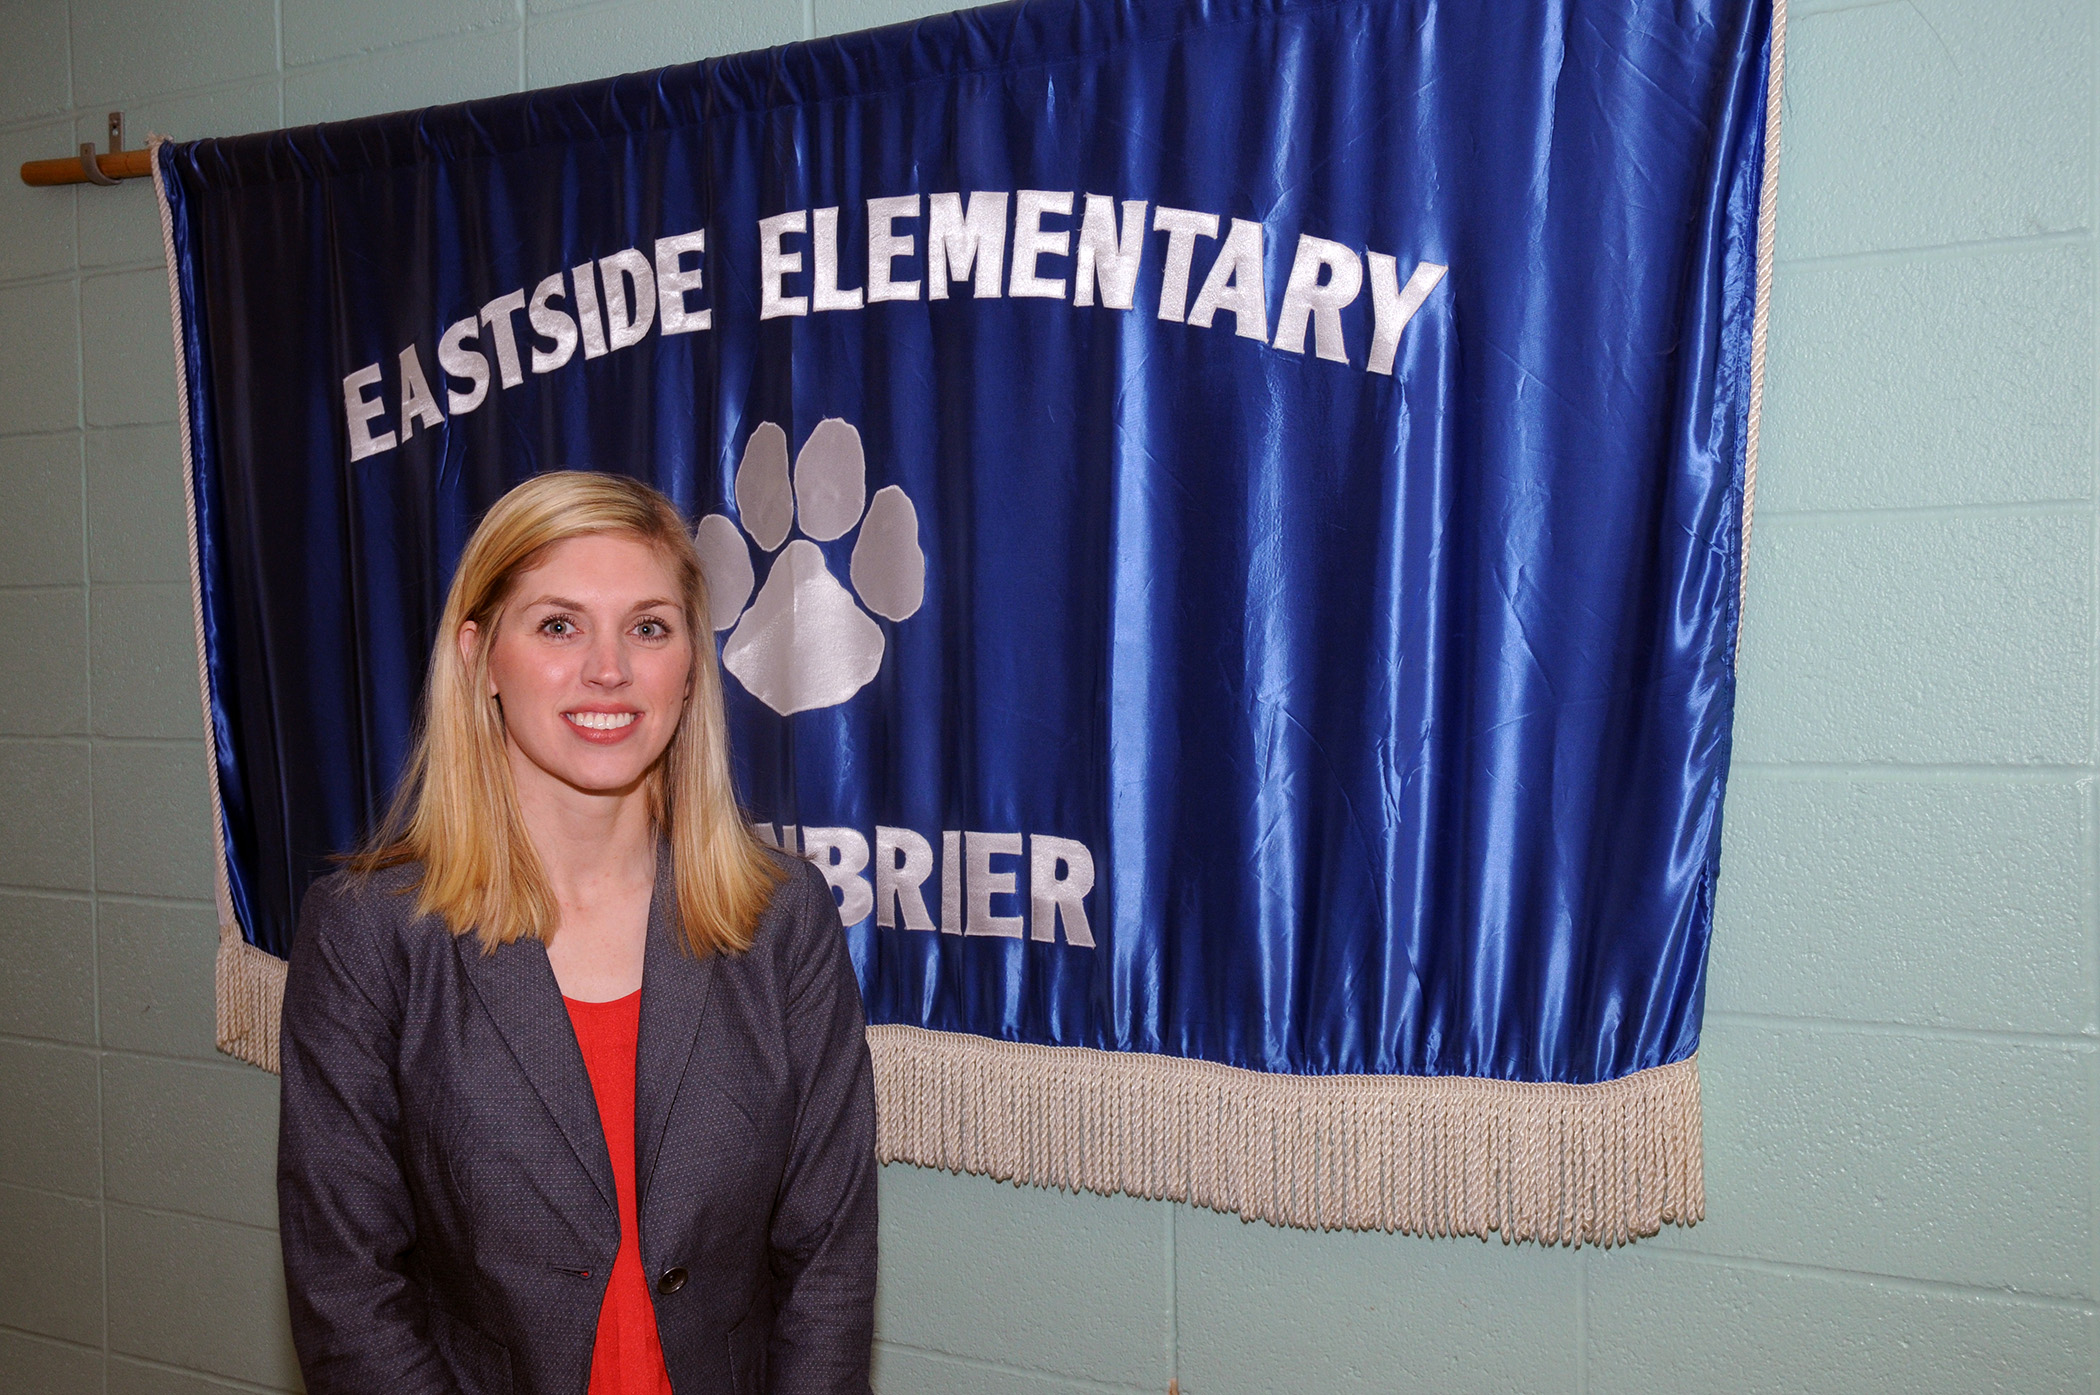 Sarah Jerry standing in front of elementary school banner